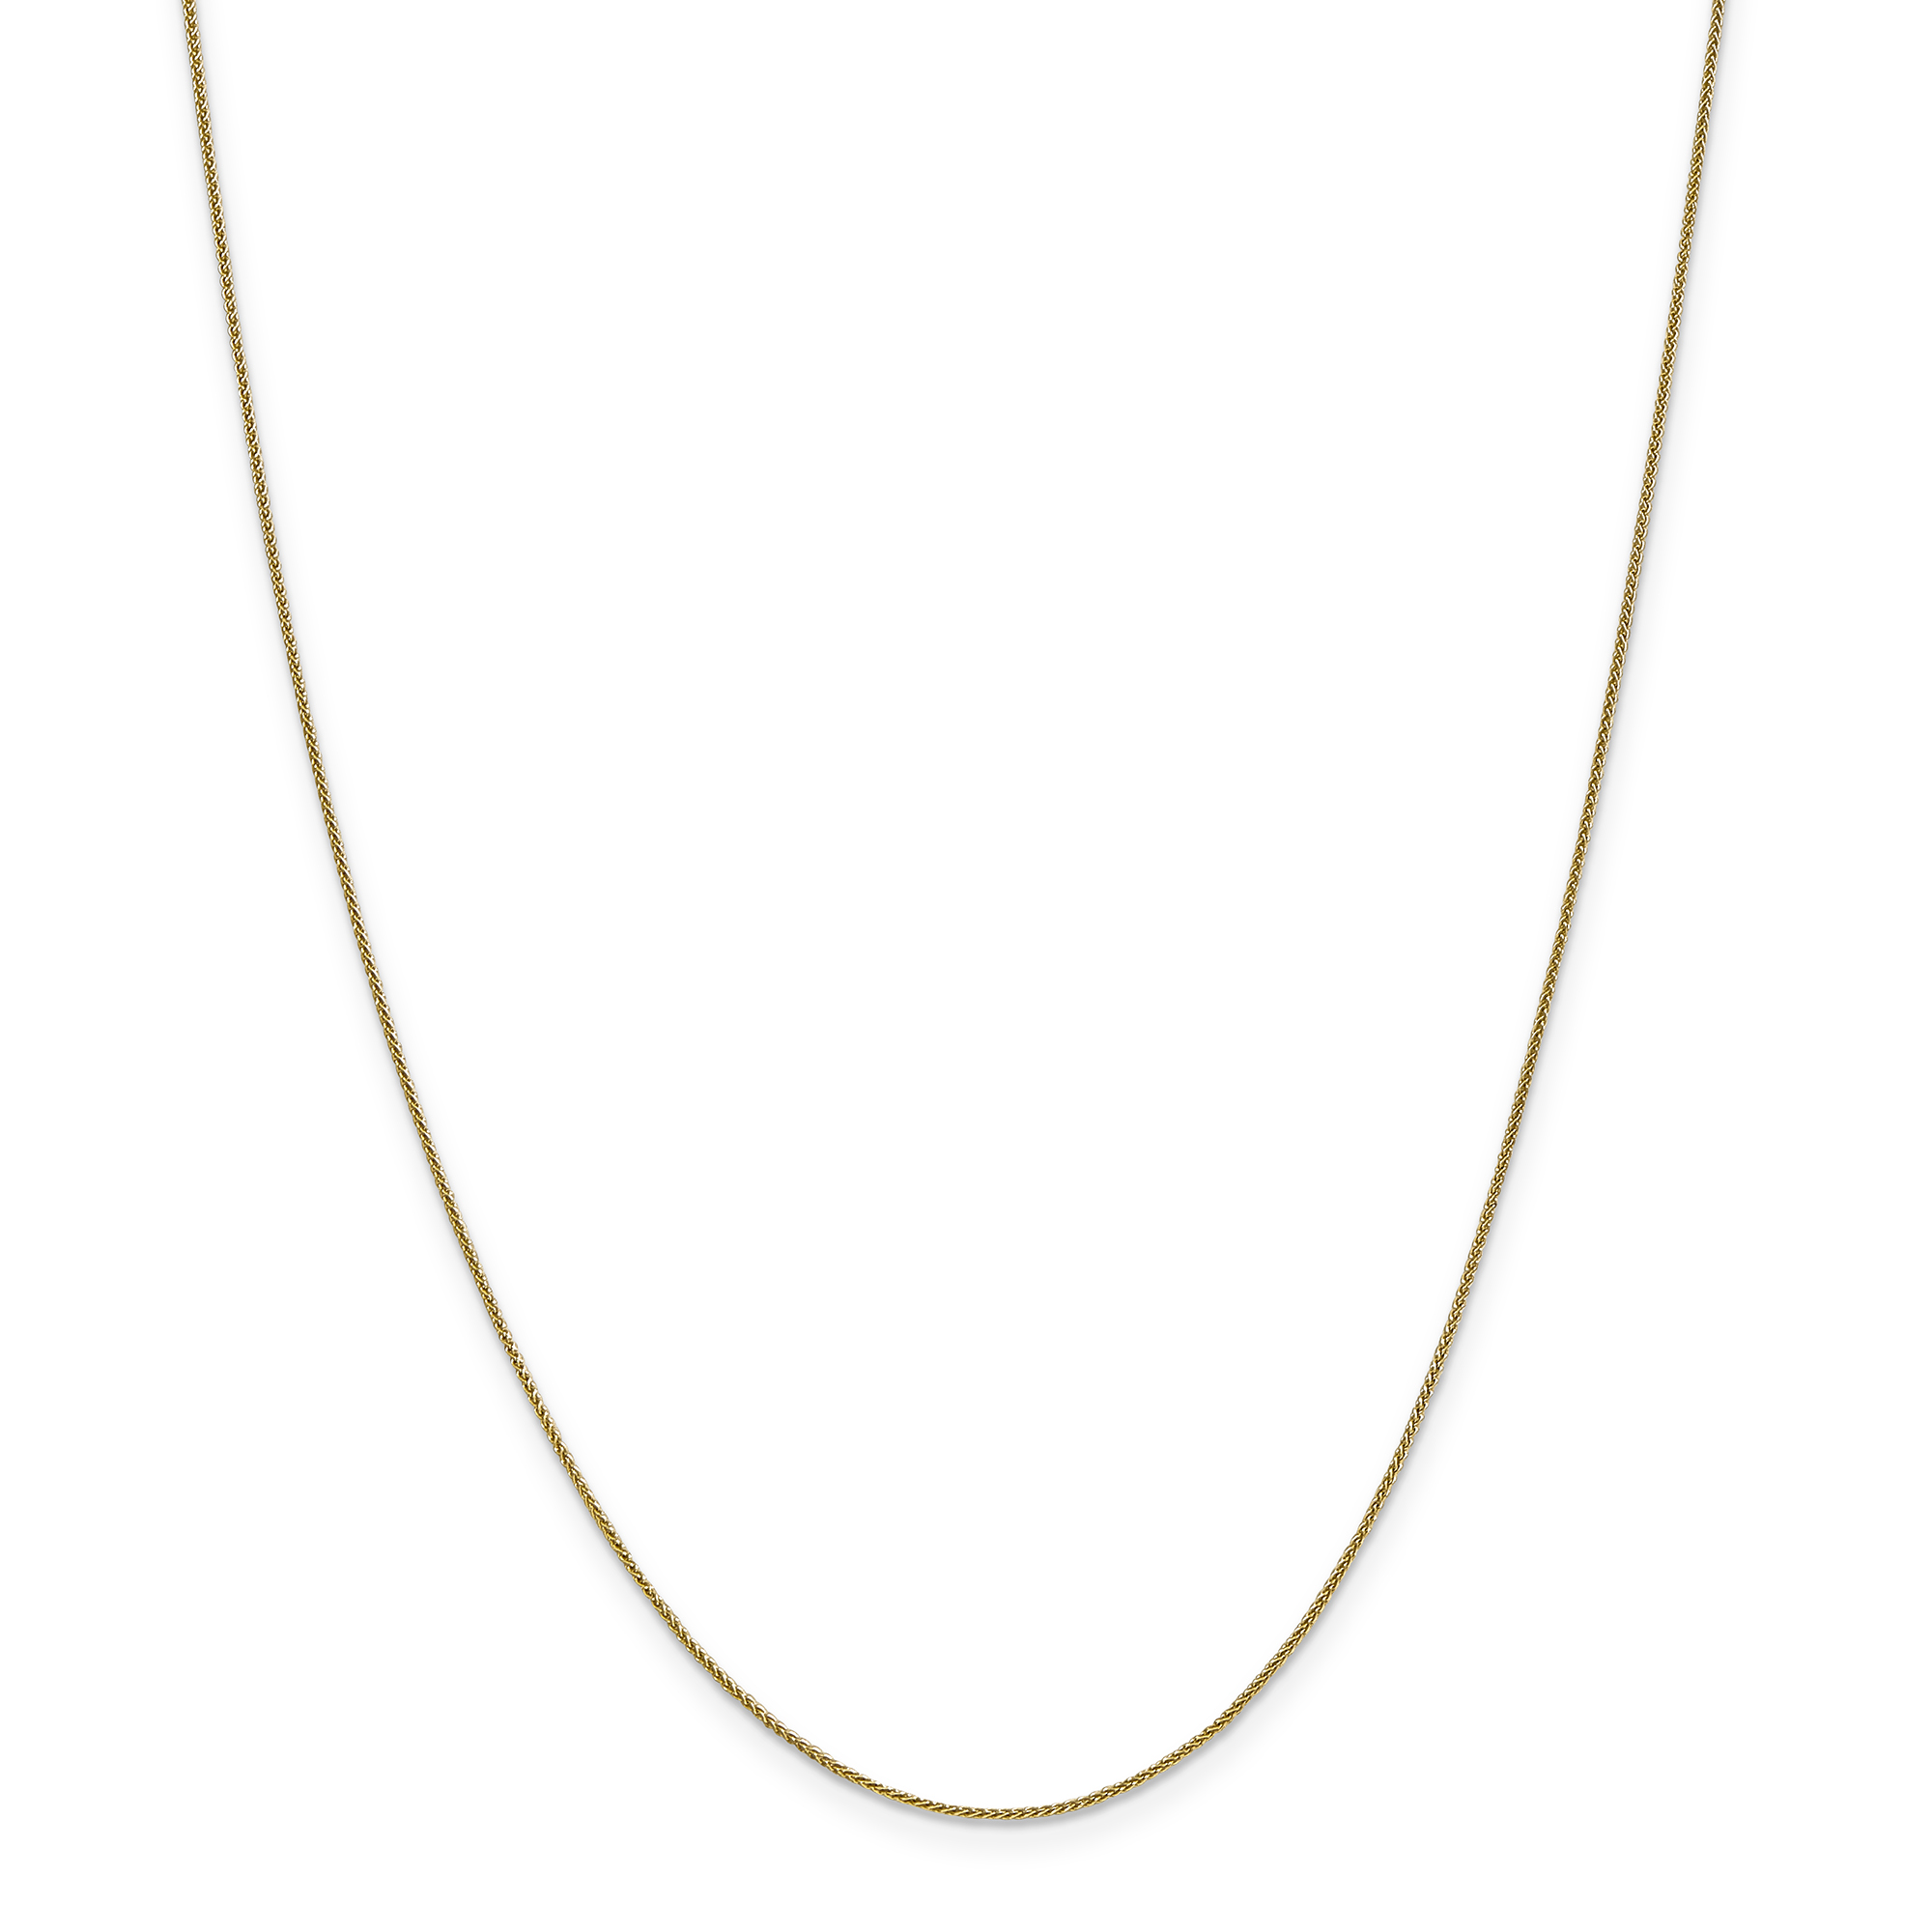 14K Yellow Gold 0.80mm Spiga Pendant Chain 16 Inch - image 5 de 5